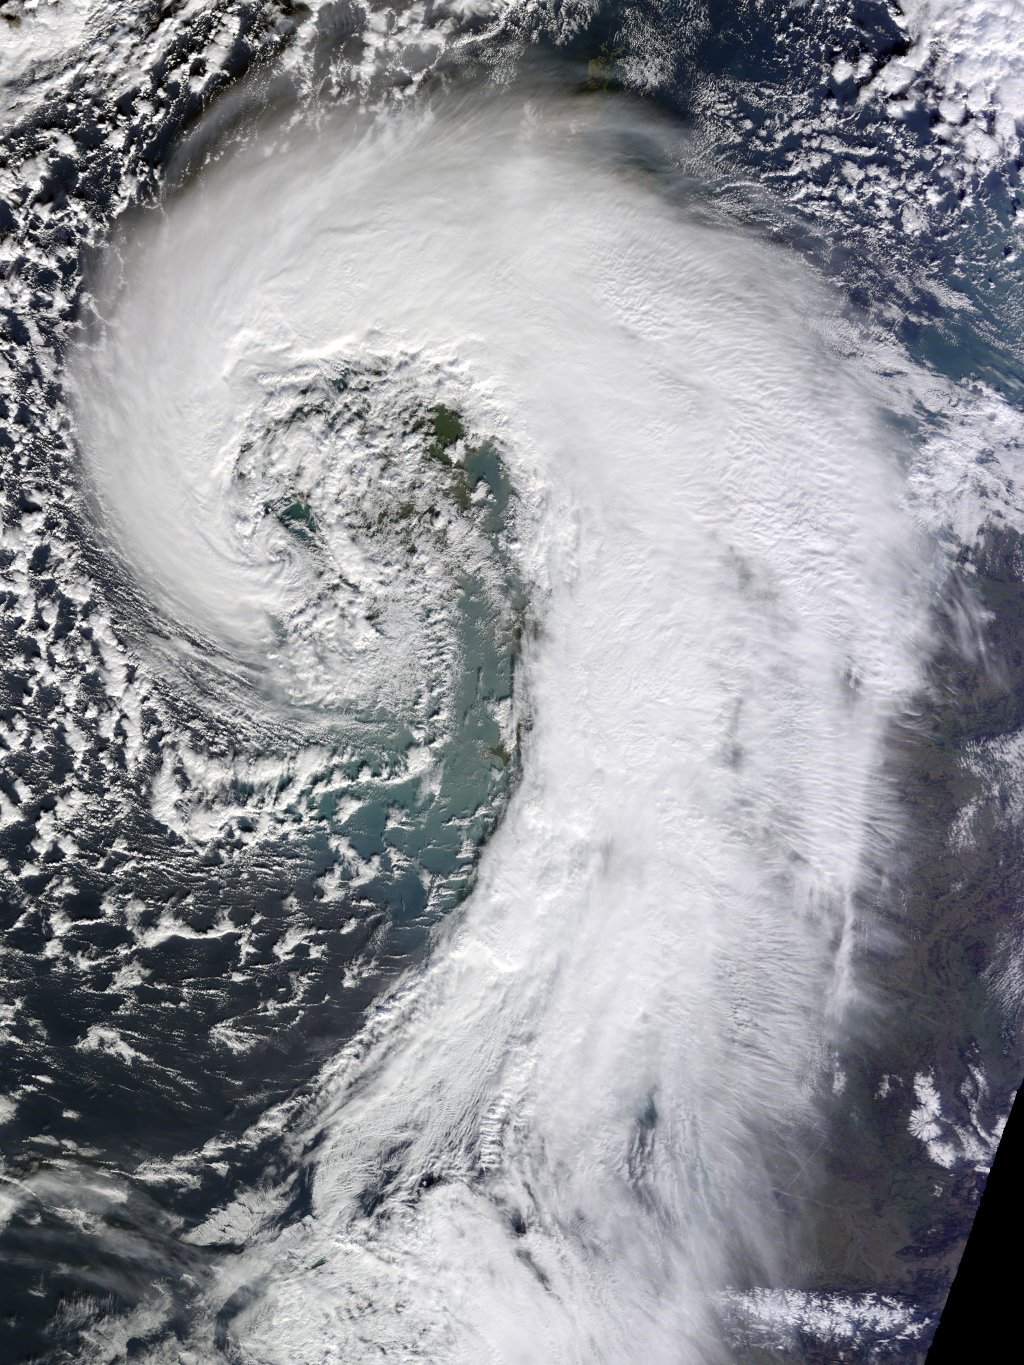 1. Extratropical Cyclone Over United Kingdom of Great Britain and Northern Ireland, February 12, 2014, As Seen By the MODIS Instrument Aboard NASA's Terra Satellite. Photo Credit: National Aeronautics and Space Administration (NASA, http://www.nasa.gov), Government of the United States of America.